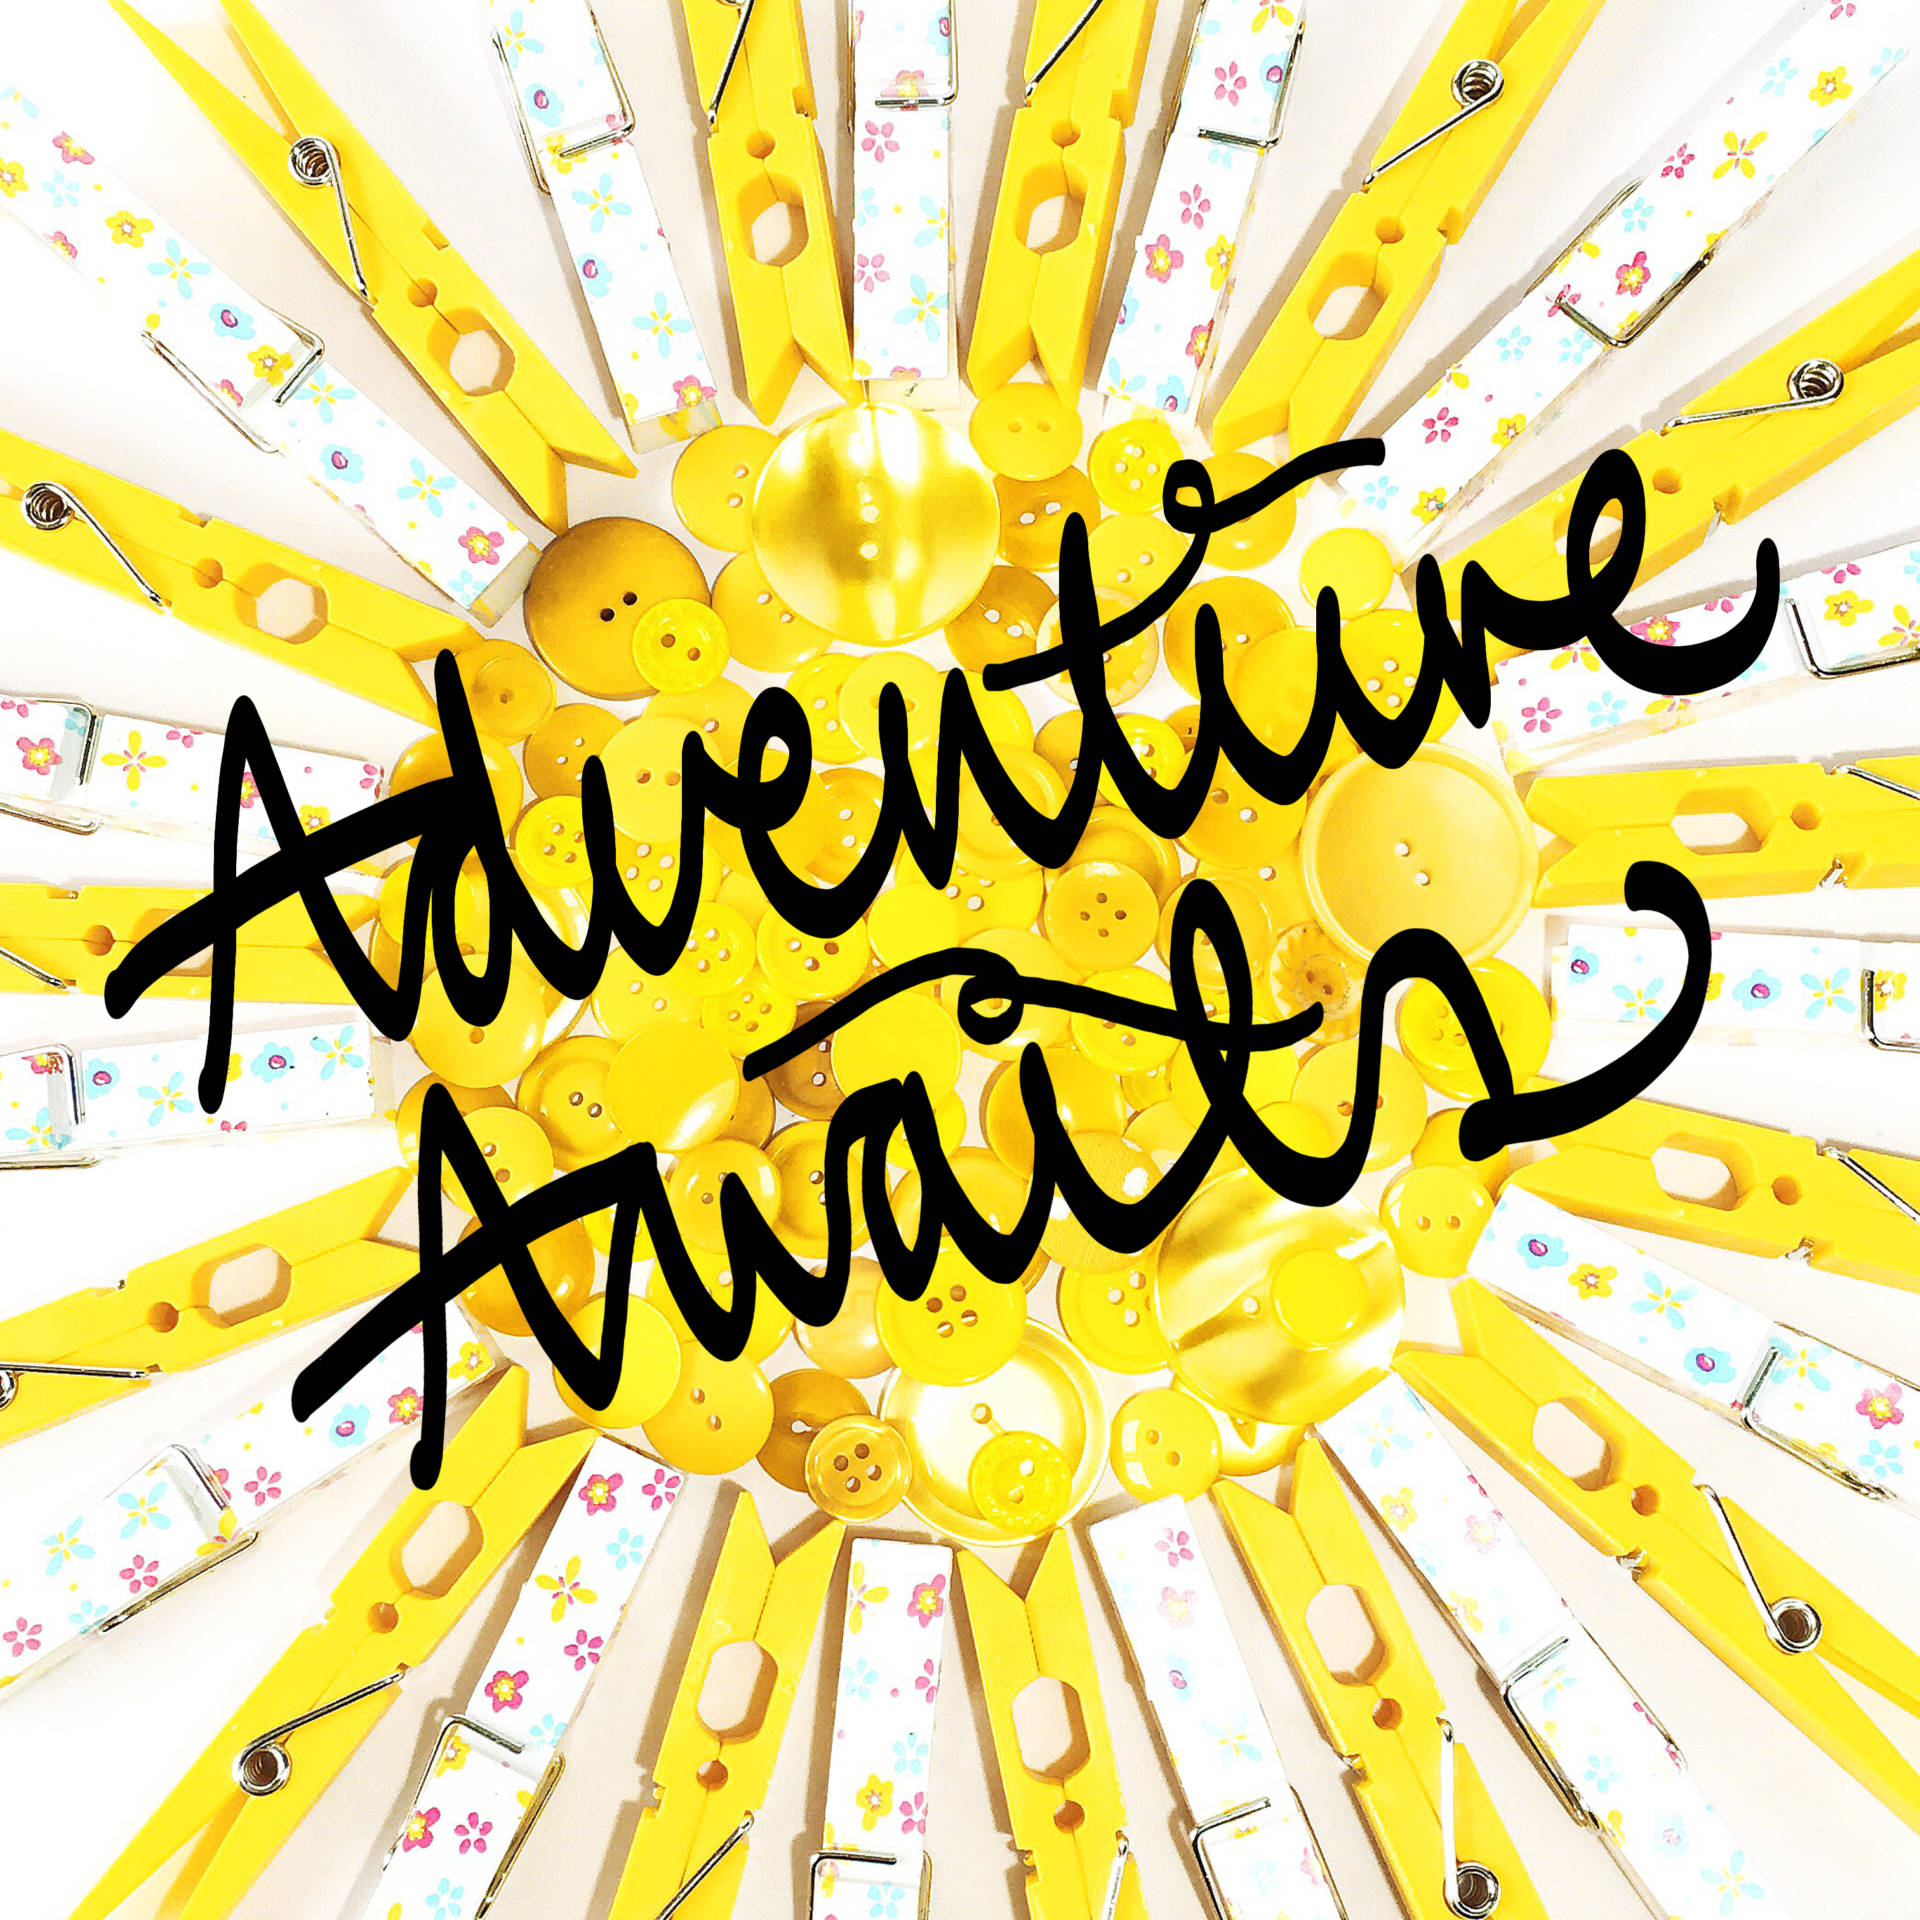 Adventure Awaits Yellow Button Sunshine with Hand Lettering by Eliston Button - Merry Christmas, Happy Holidays and a Magical New Year! at www.elistonbutton.com - Eliston Button - That Crafty Kid – Art, Design, Craft & Adventure.